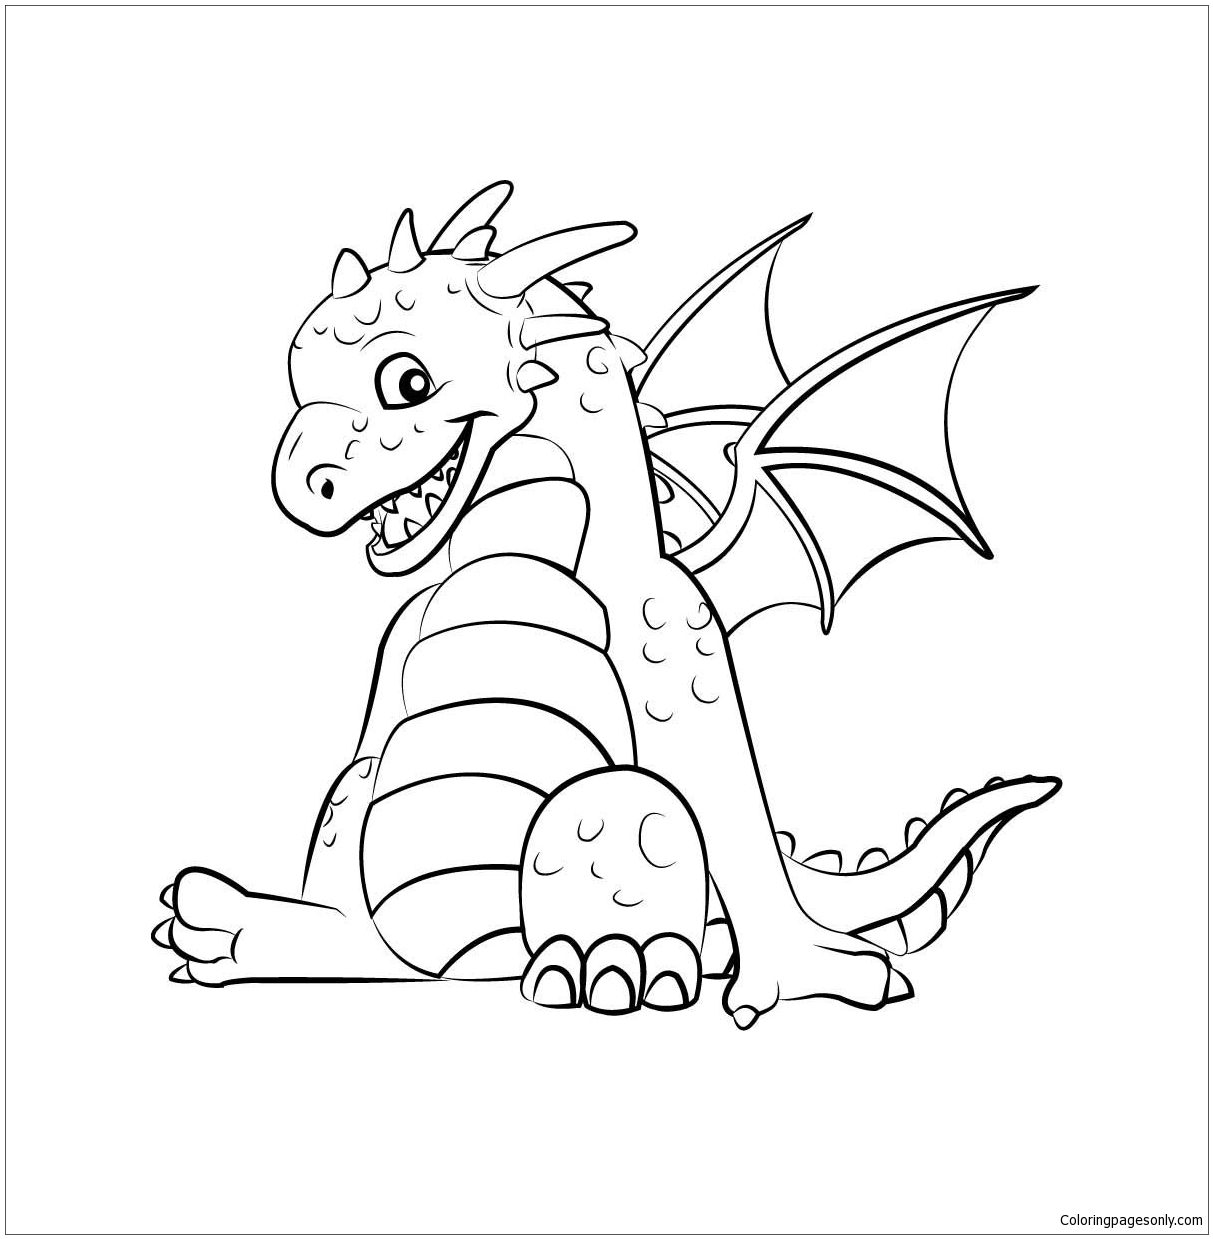 Cute Dragon 1 Coloring Page - Free Coloring Pages Online